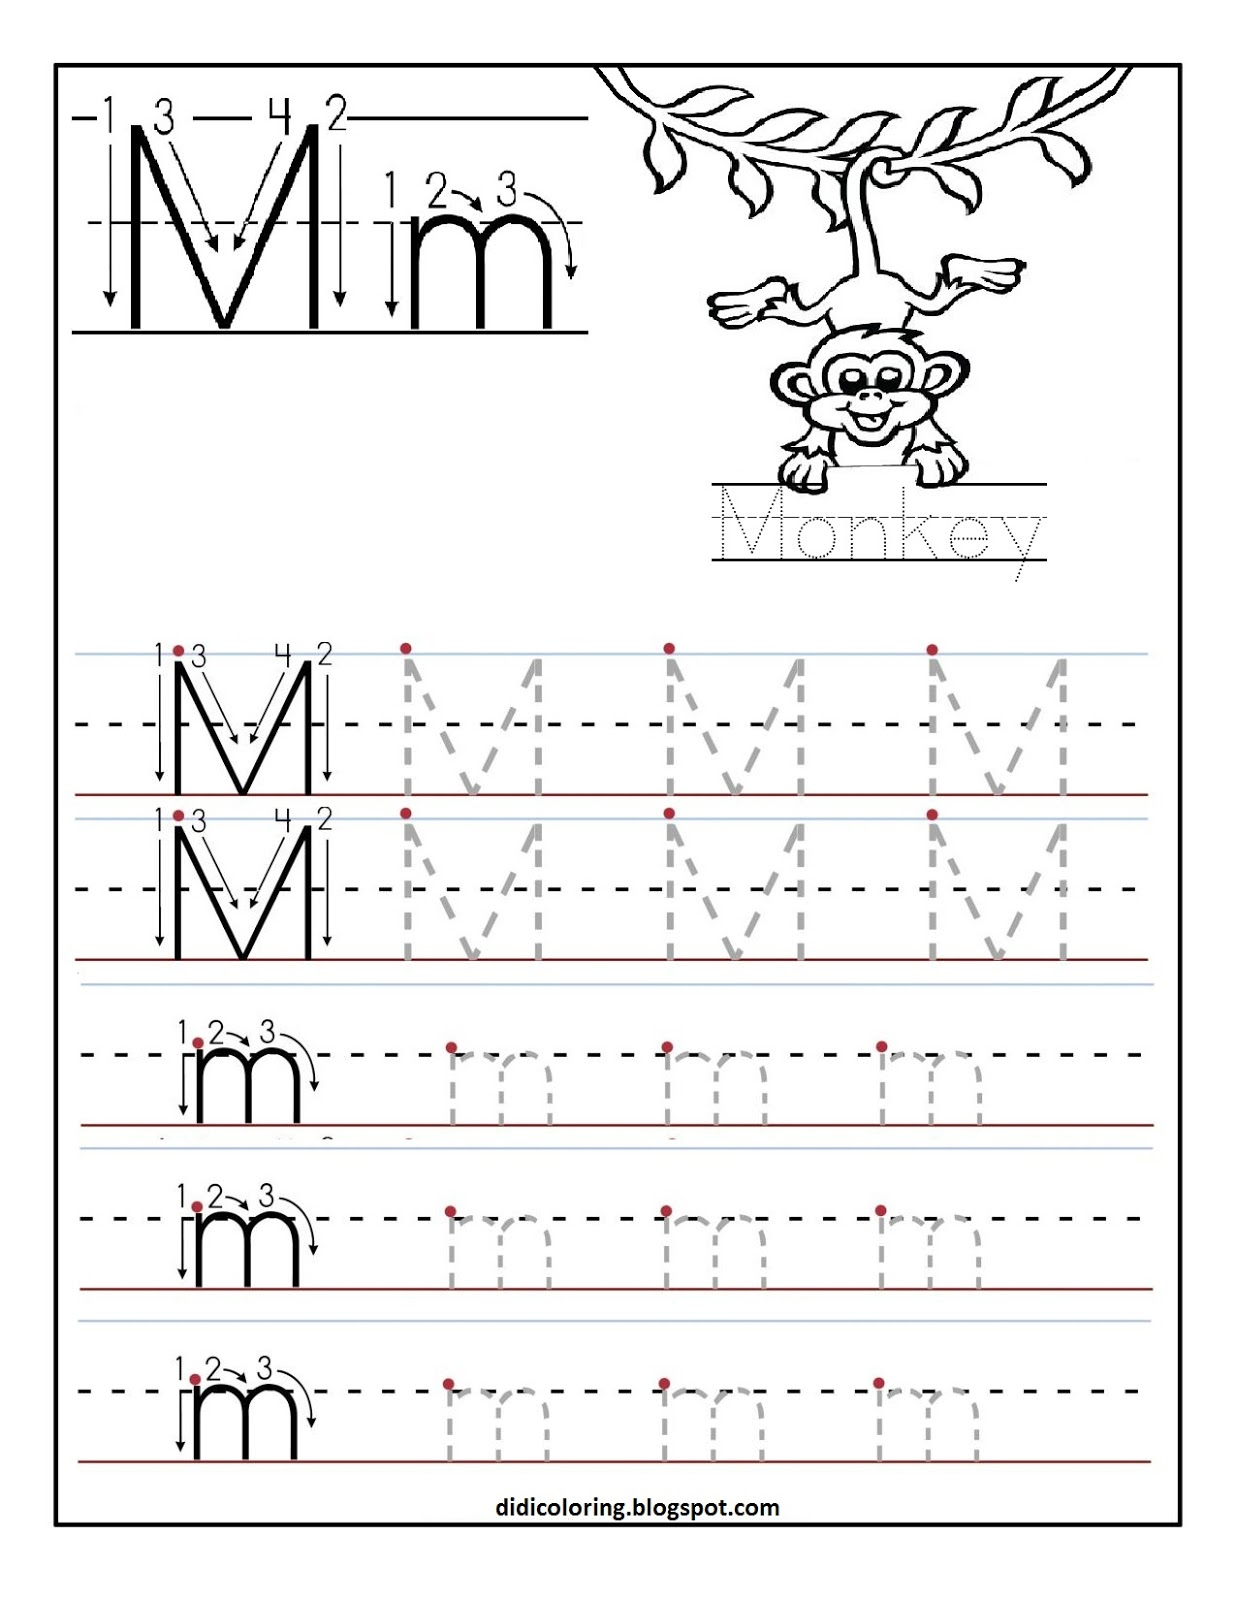 Enjoy Writing Letter Ally Good For Child To Learn Ee